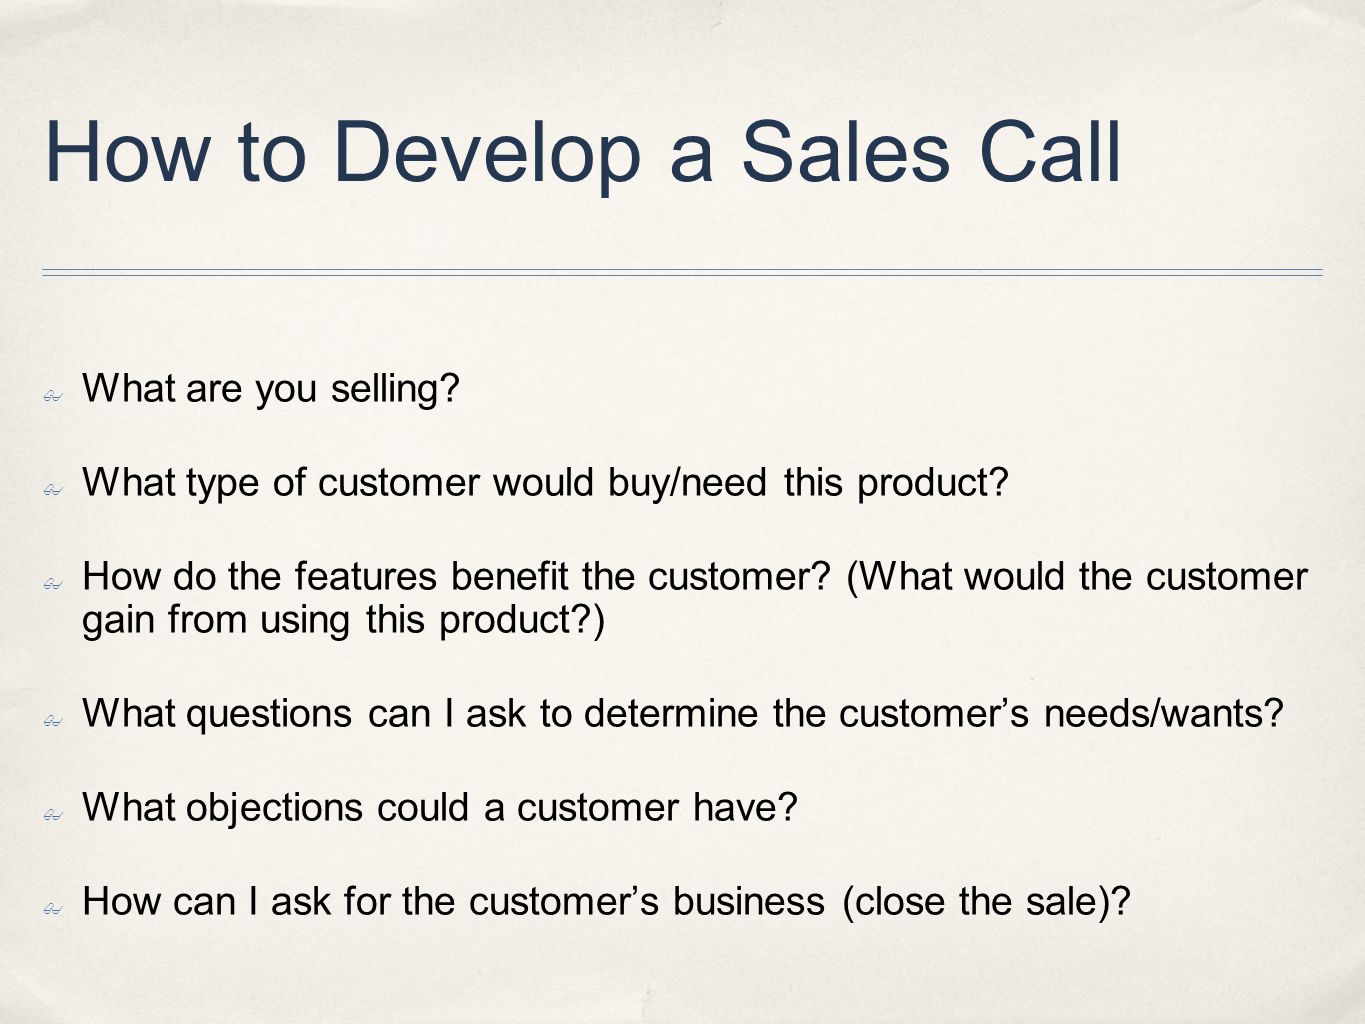 How to Develop a Sales Call